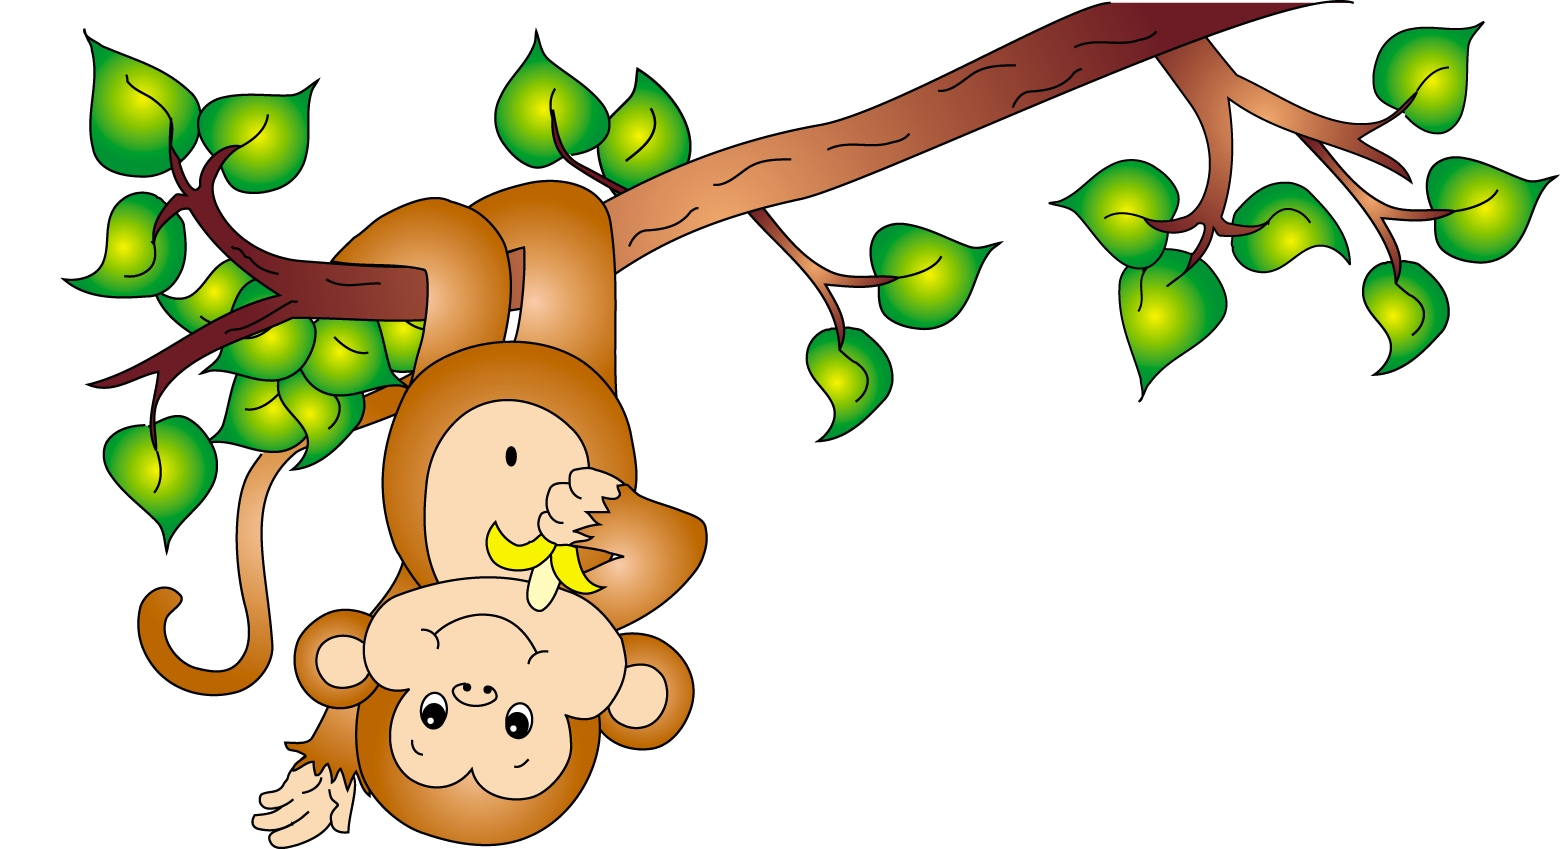 Cute Monkey Clip Art Wallpaper  10612 Wallpaper   Wallpaper Screen